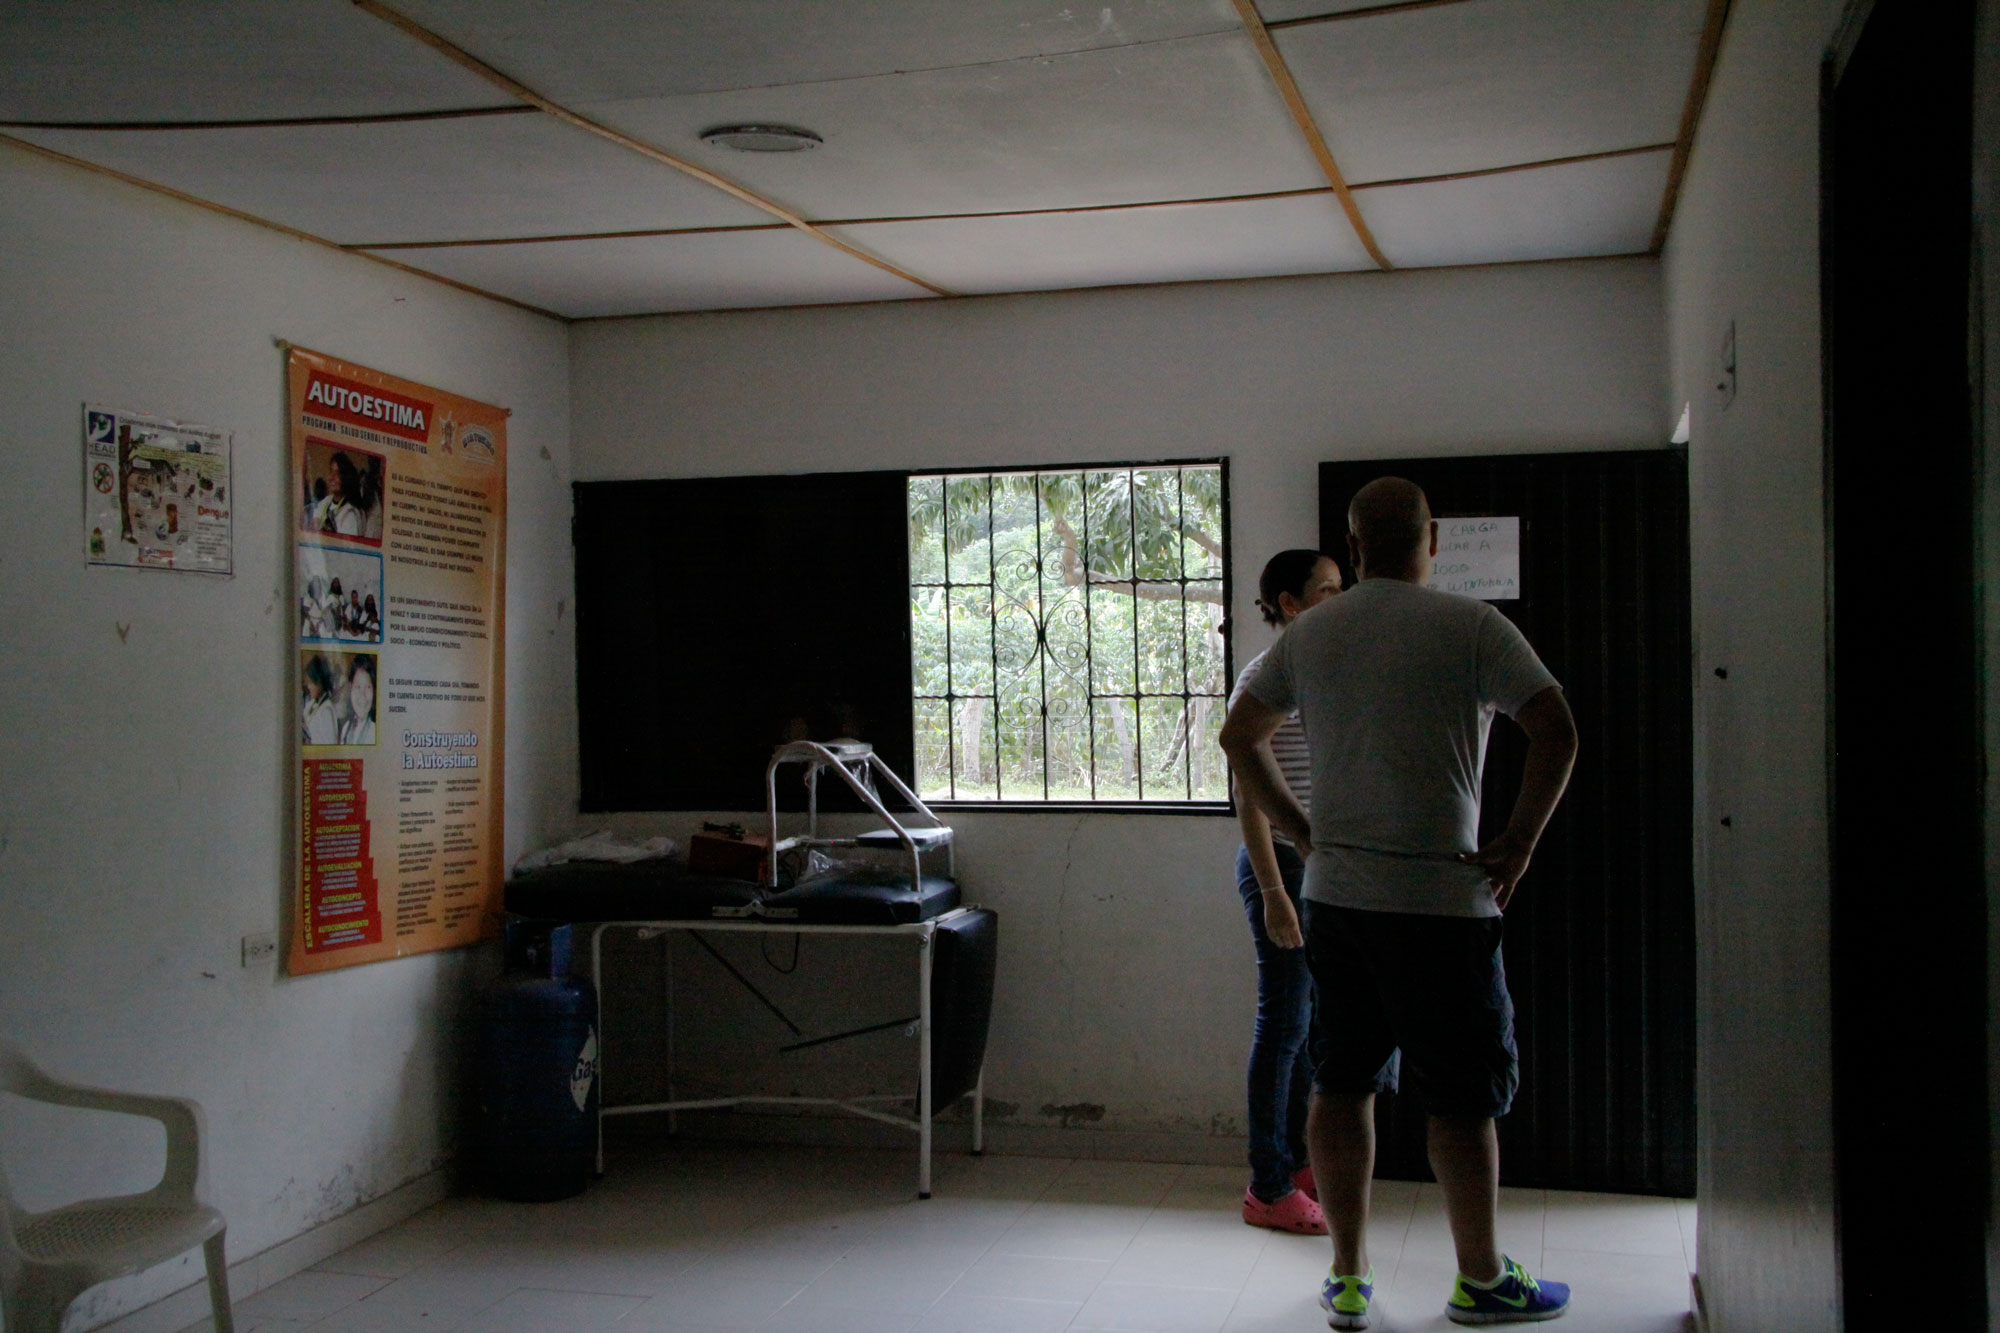 Tour of the Gun Aruwun healthcare center with Dr Pierre Angely, July 2014